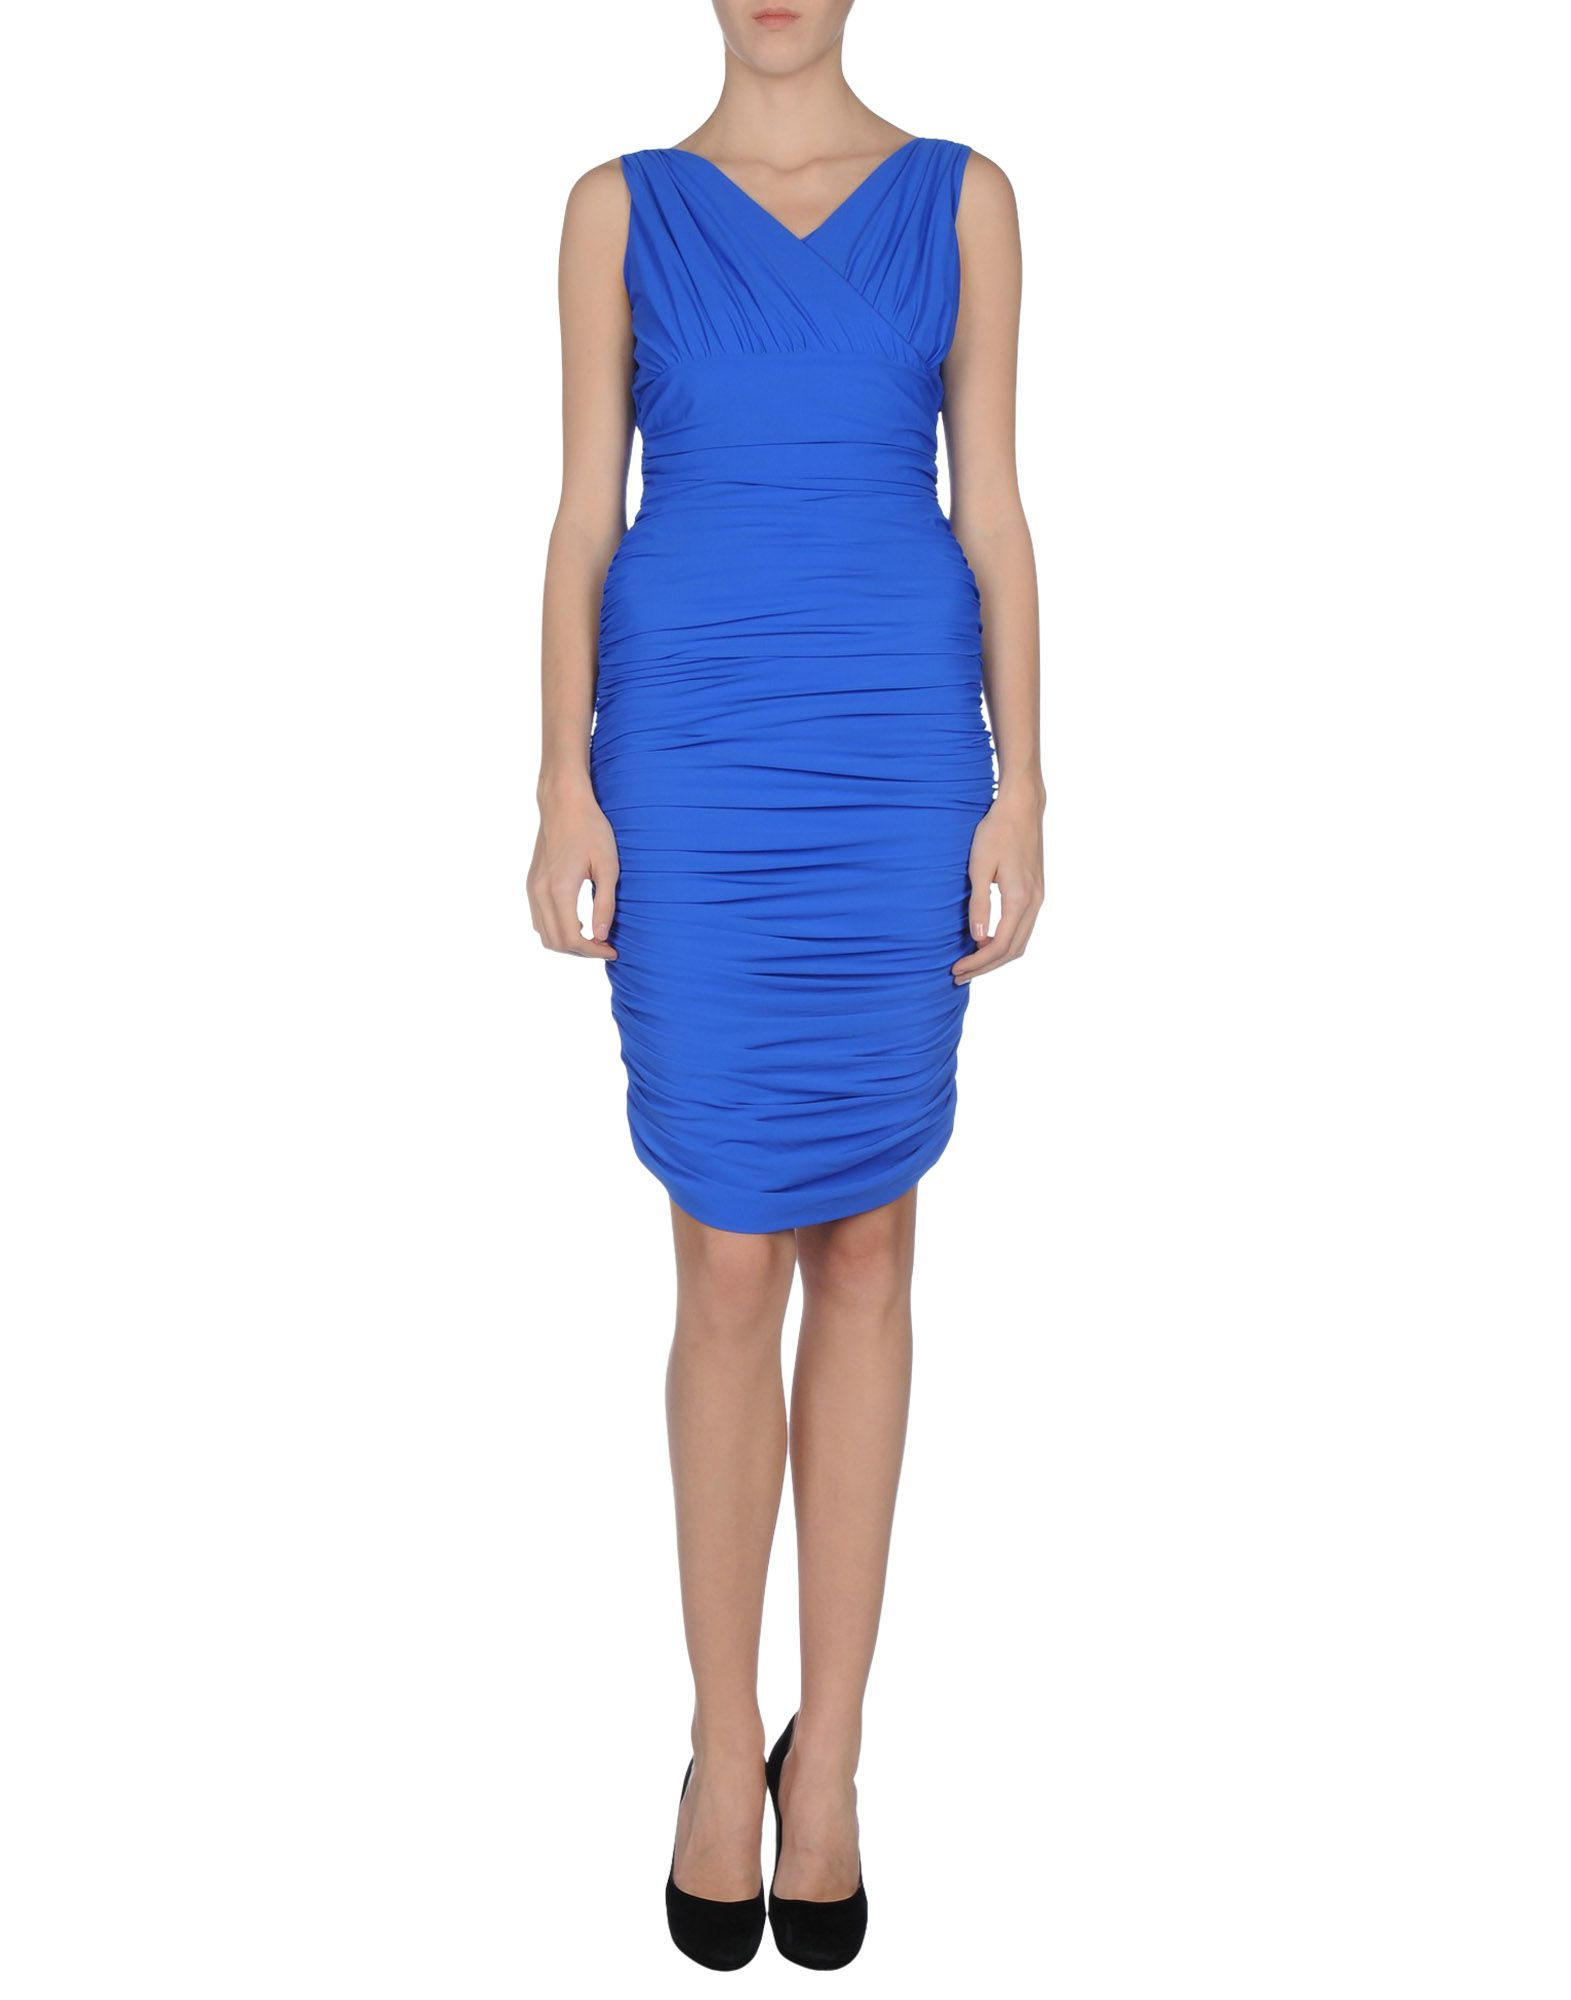 Chiara Boni The Most Popular Dress In America: La Petite Robe Di Chiara Boni Knee-Length Dress In Blue